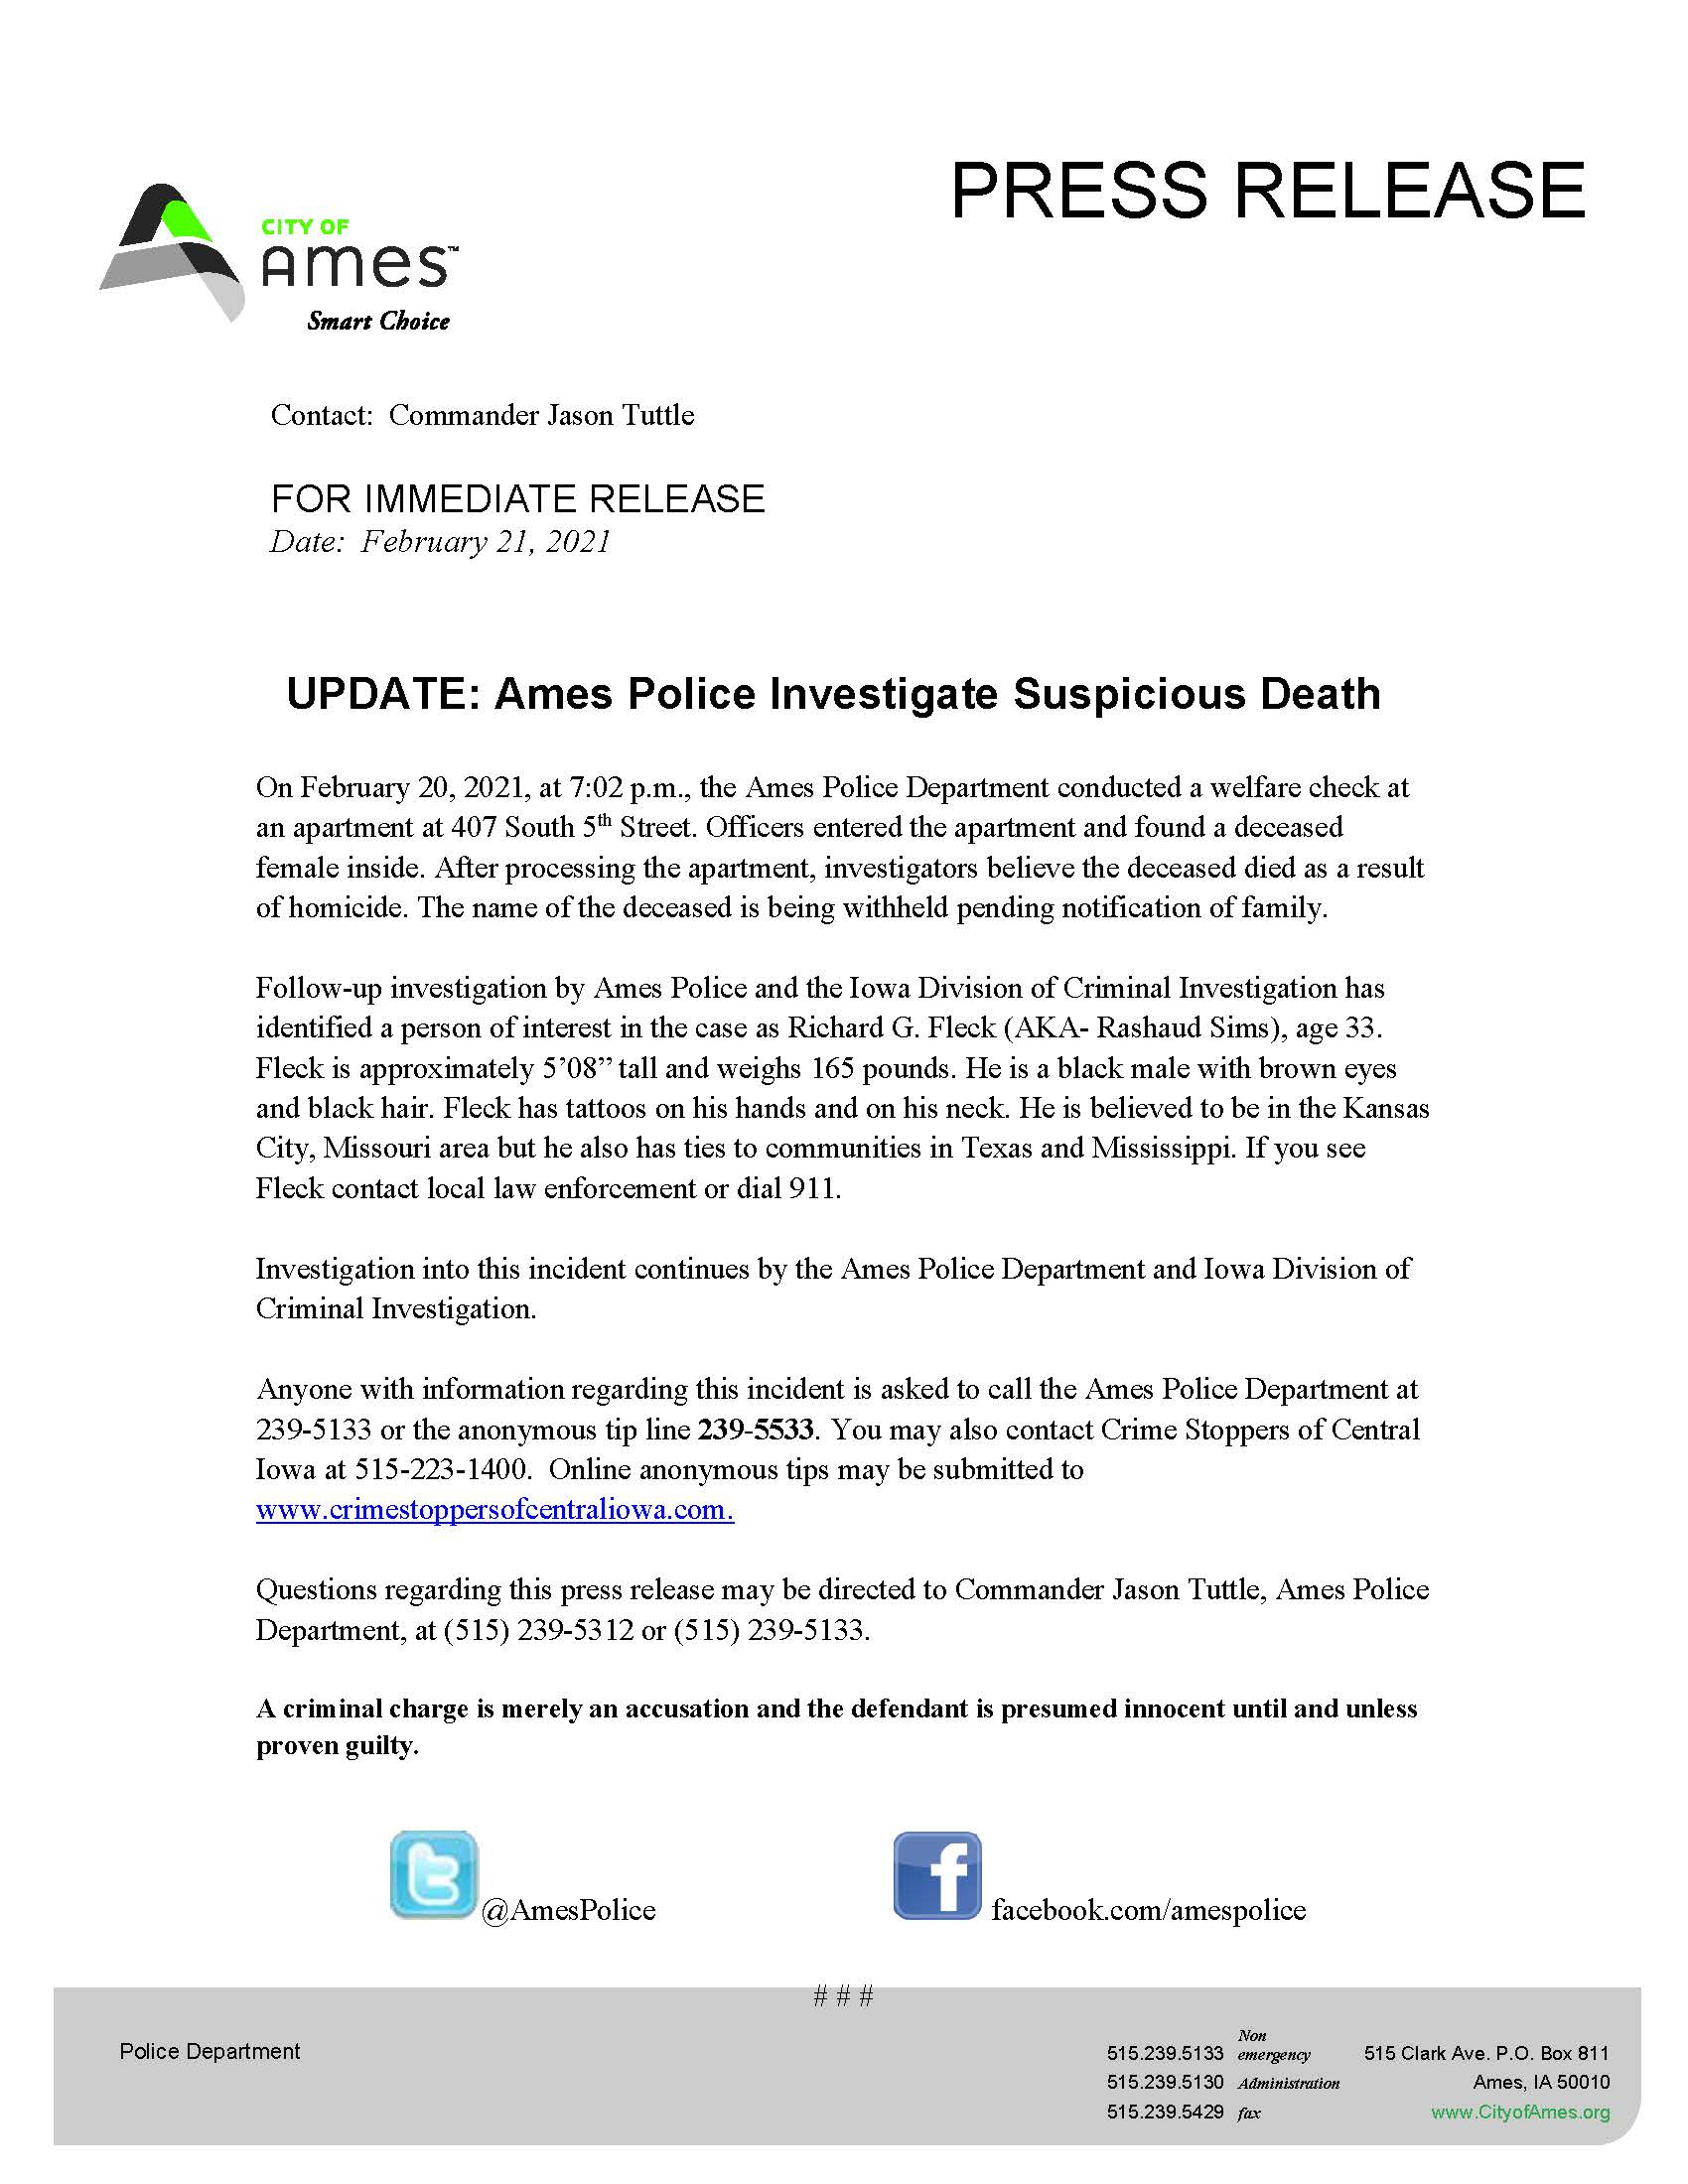 Link to Ames Update press release